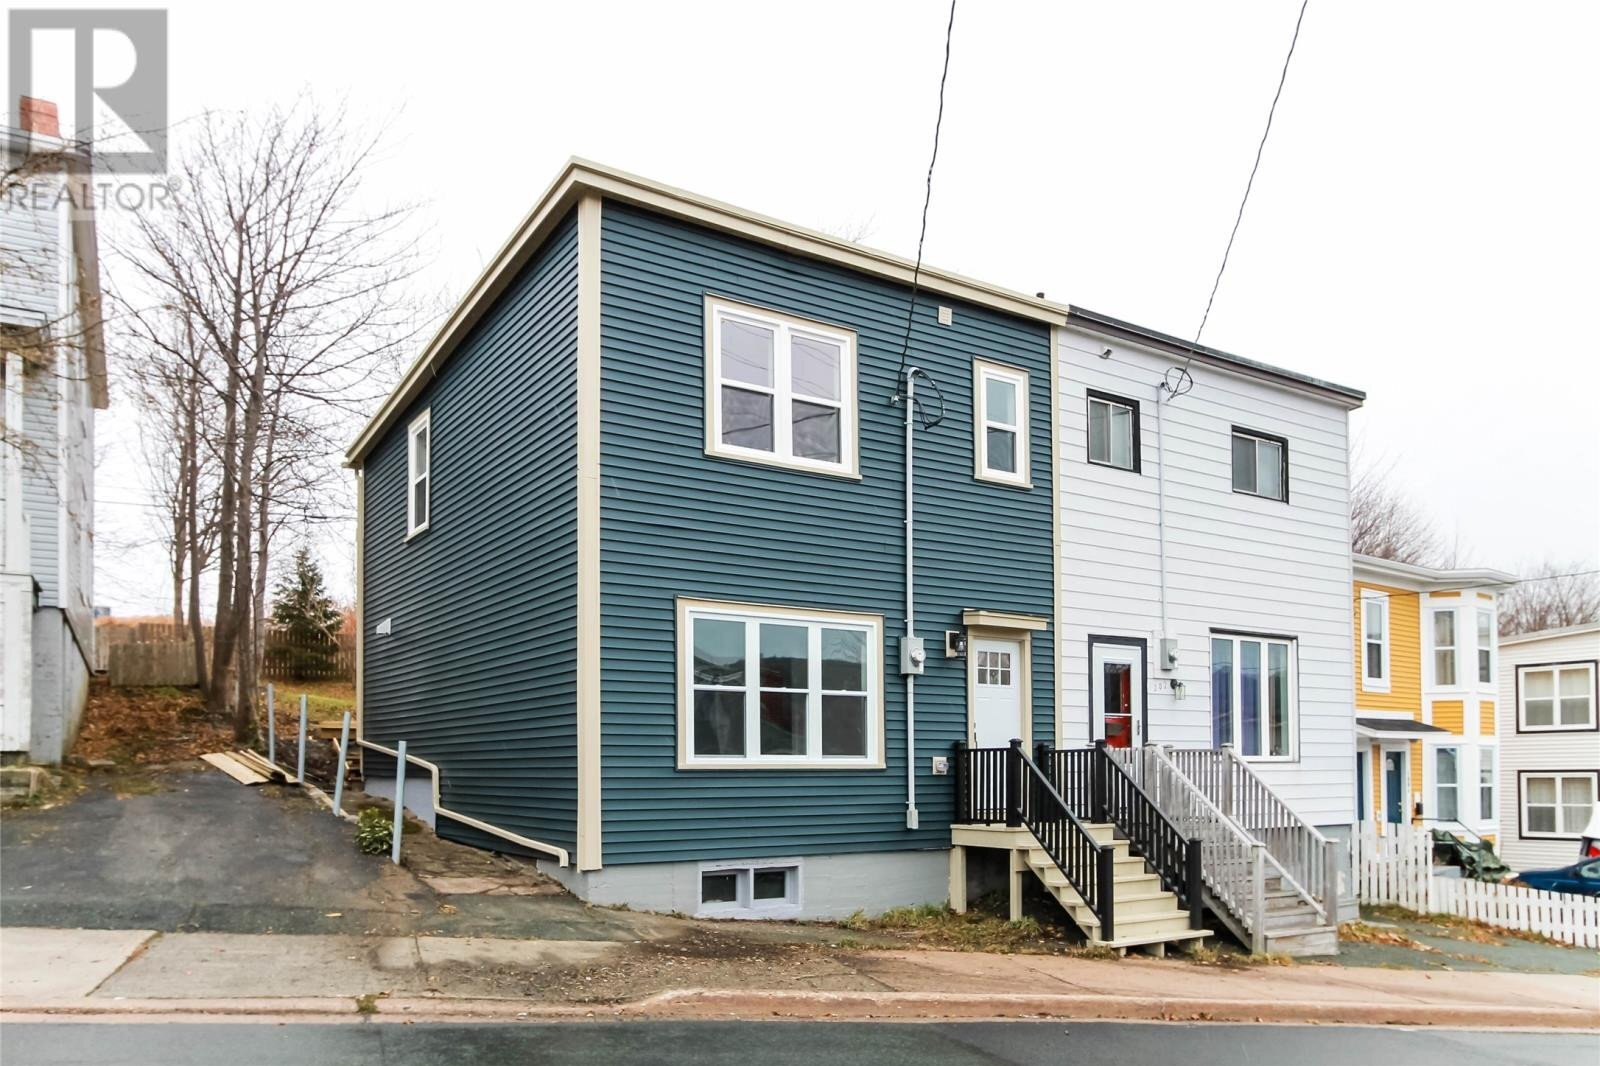 House for sale at 204 Hamilton Ave St. John's Newfoundland - MLS: 1223614